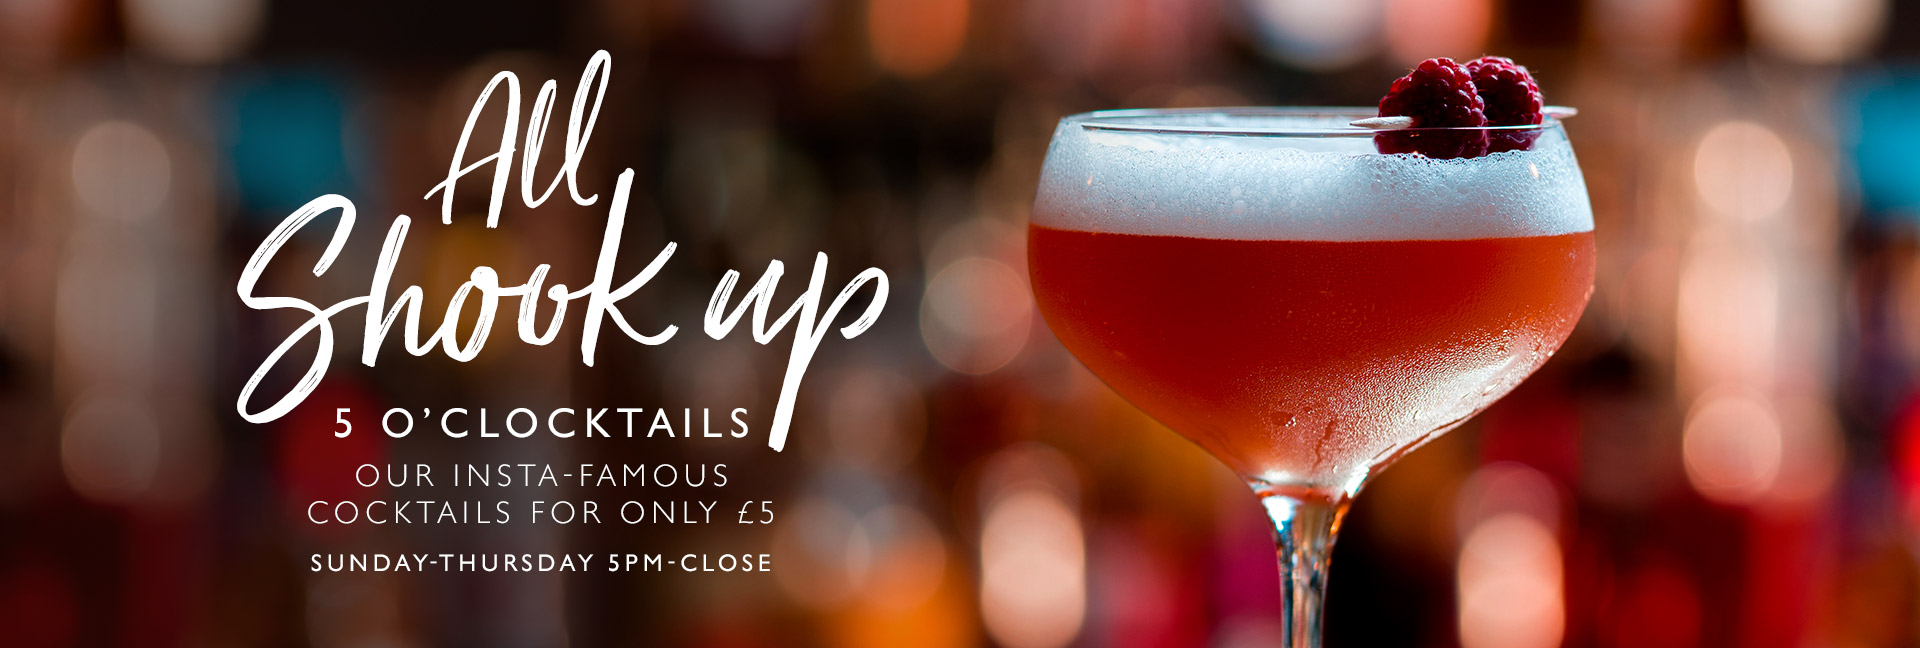 5 O'clocktails at All Bar One Nottingham - Book now